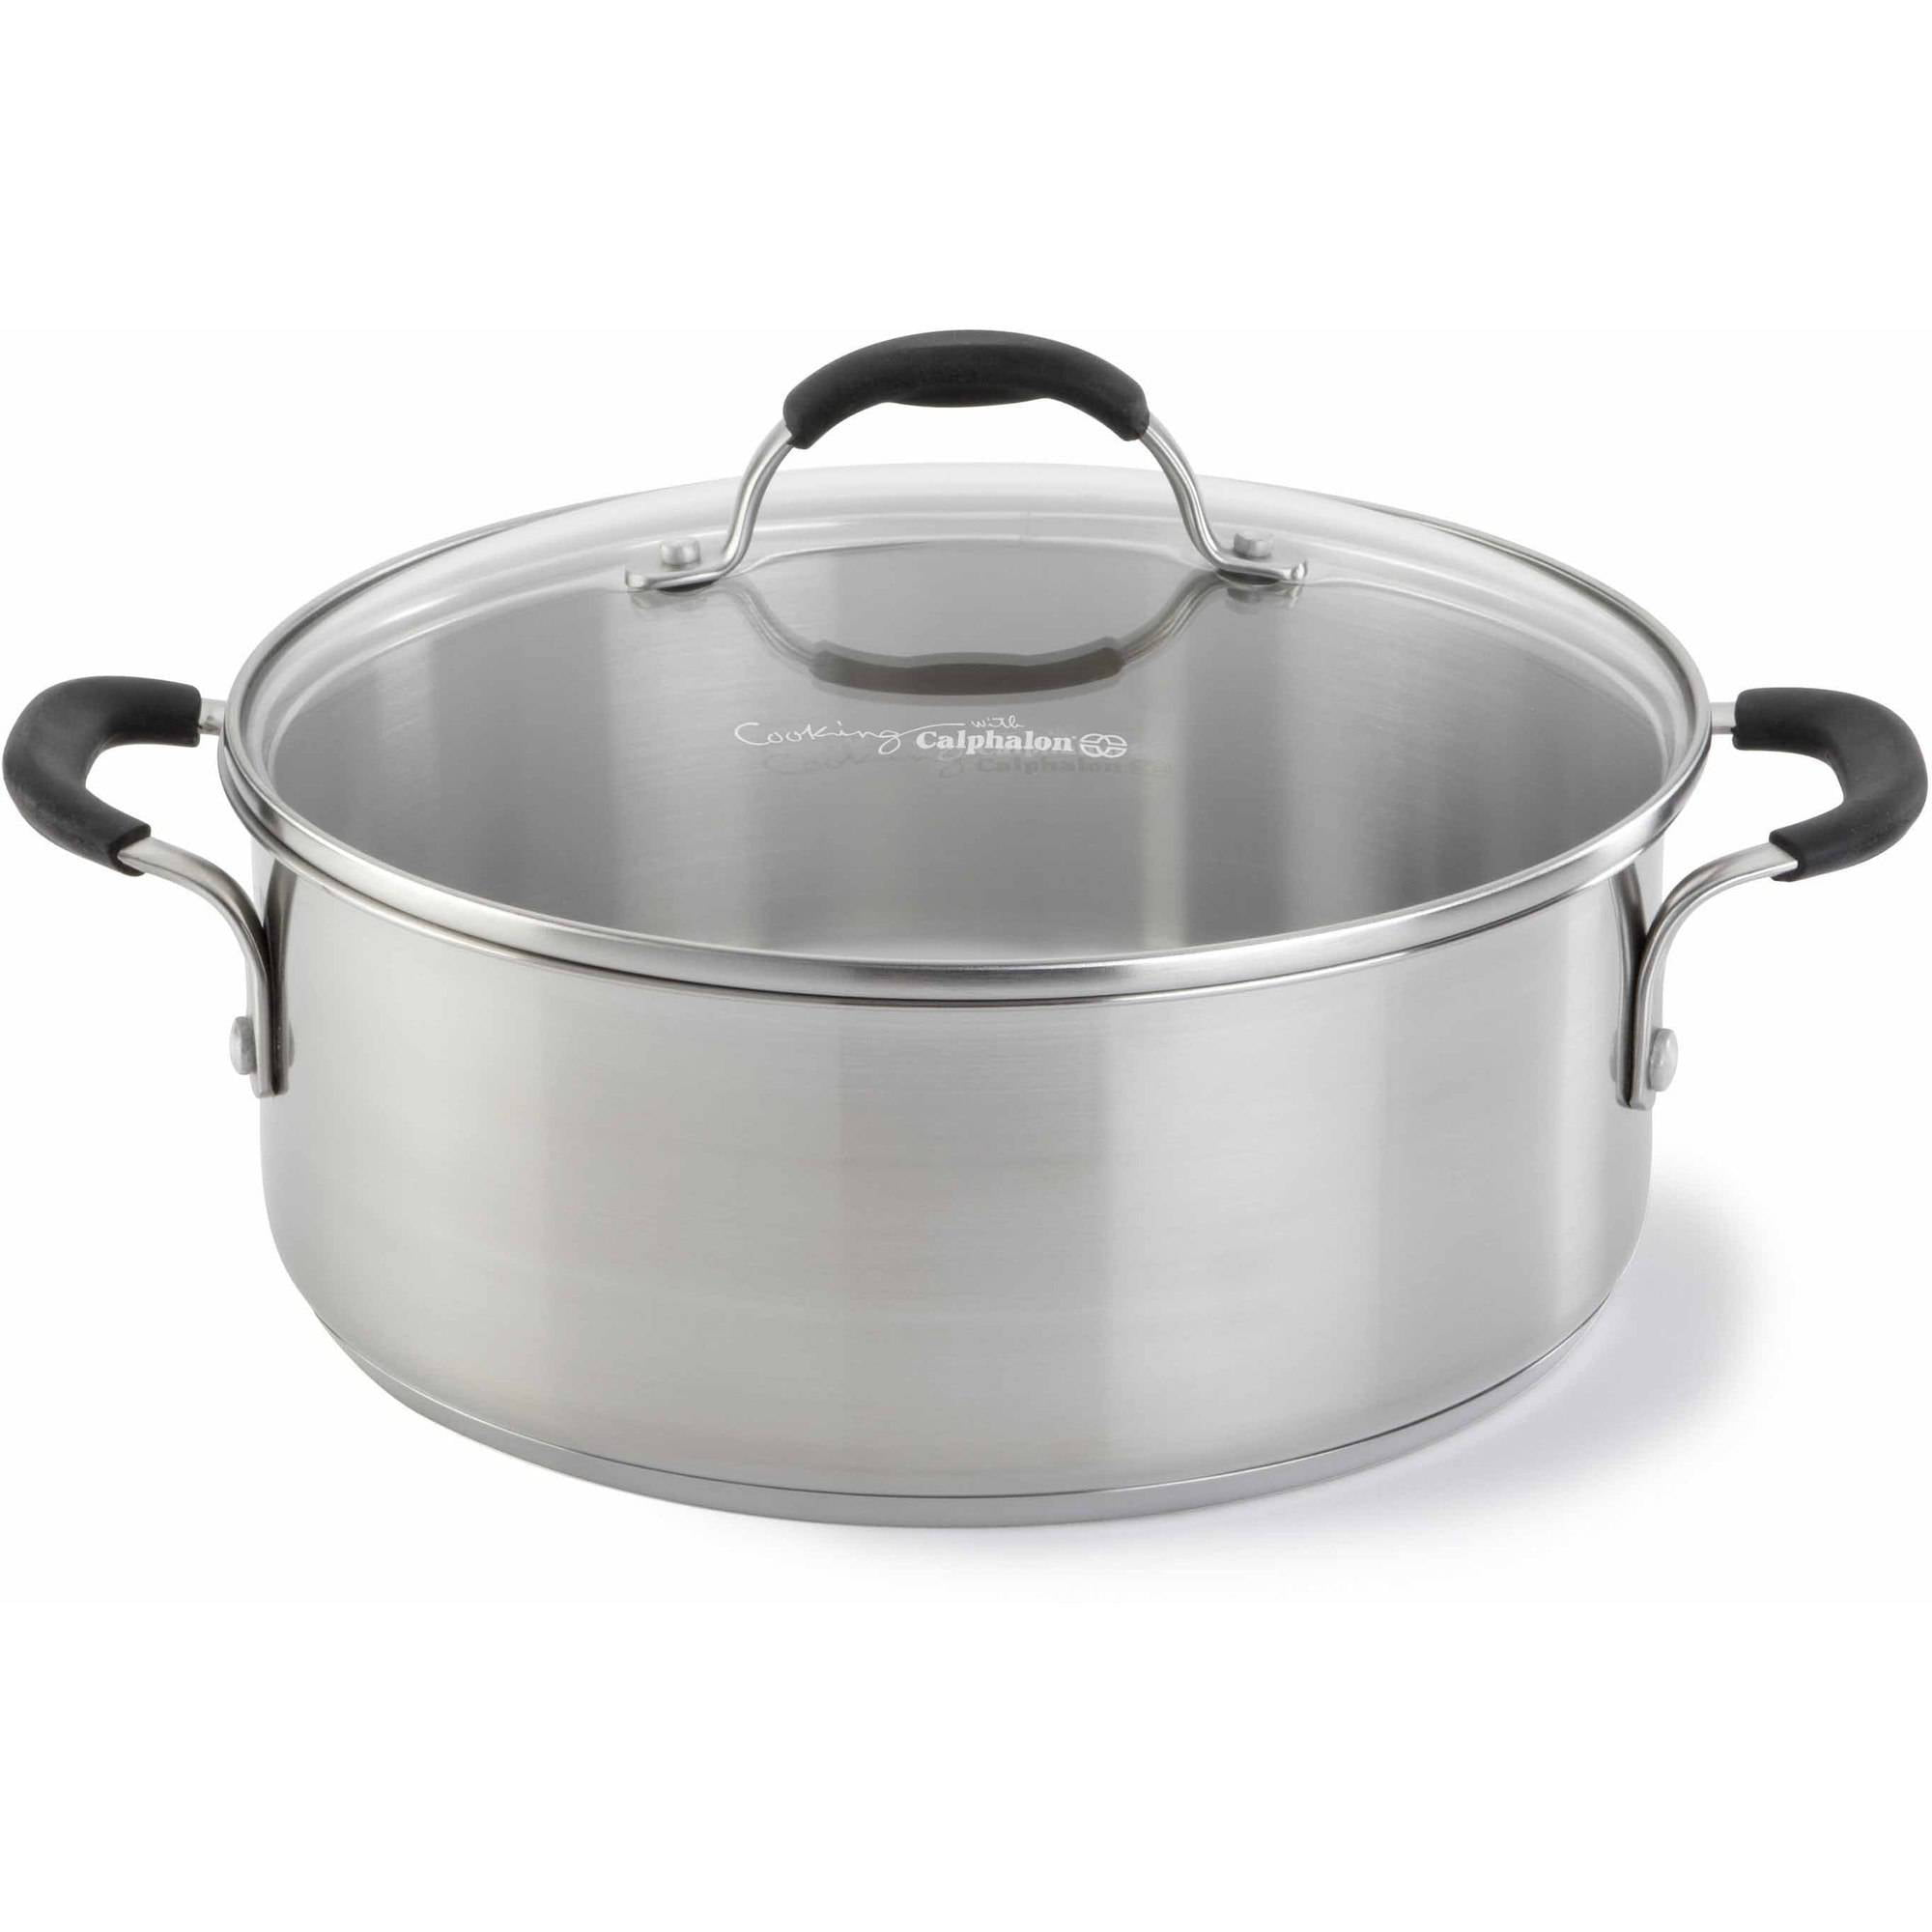 Cooking with Calphalon Stainless Steel 5 Quart Dutch Oven \u0026 Cover ...